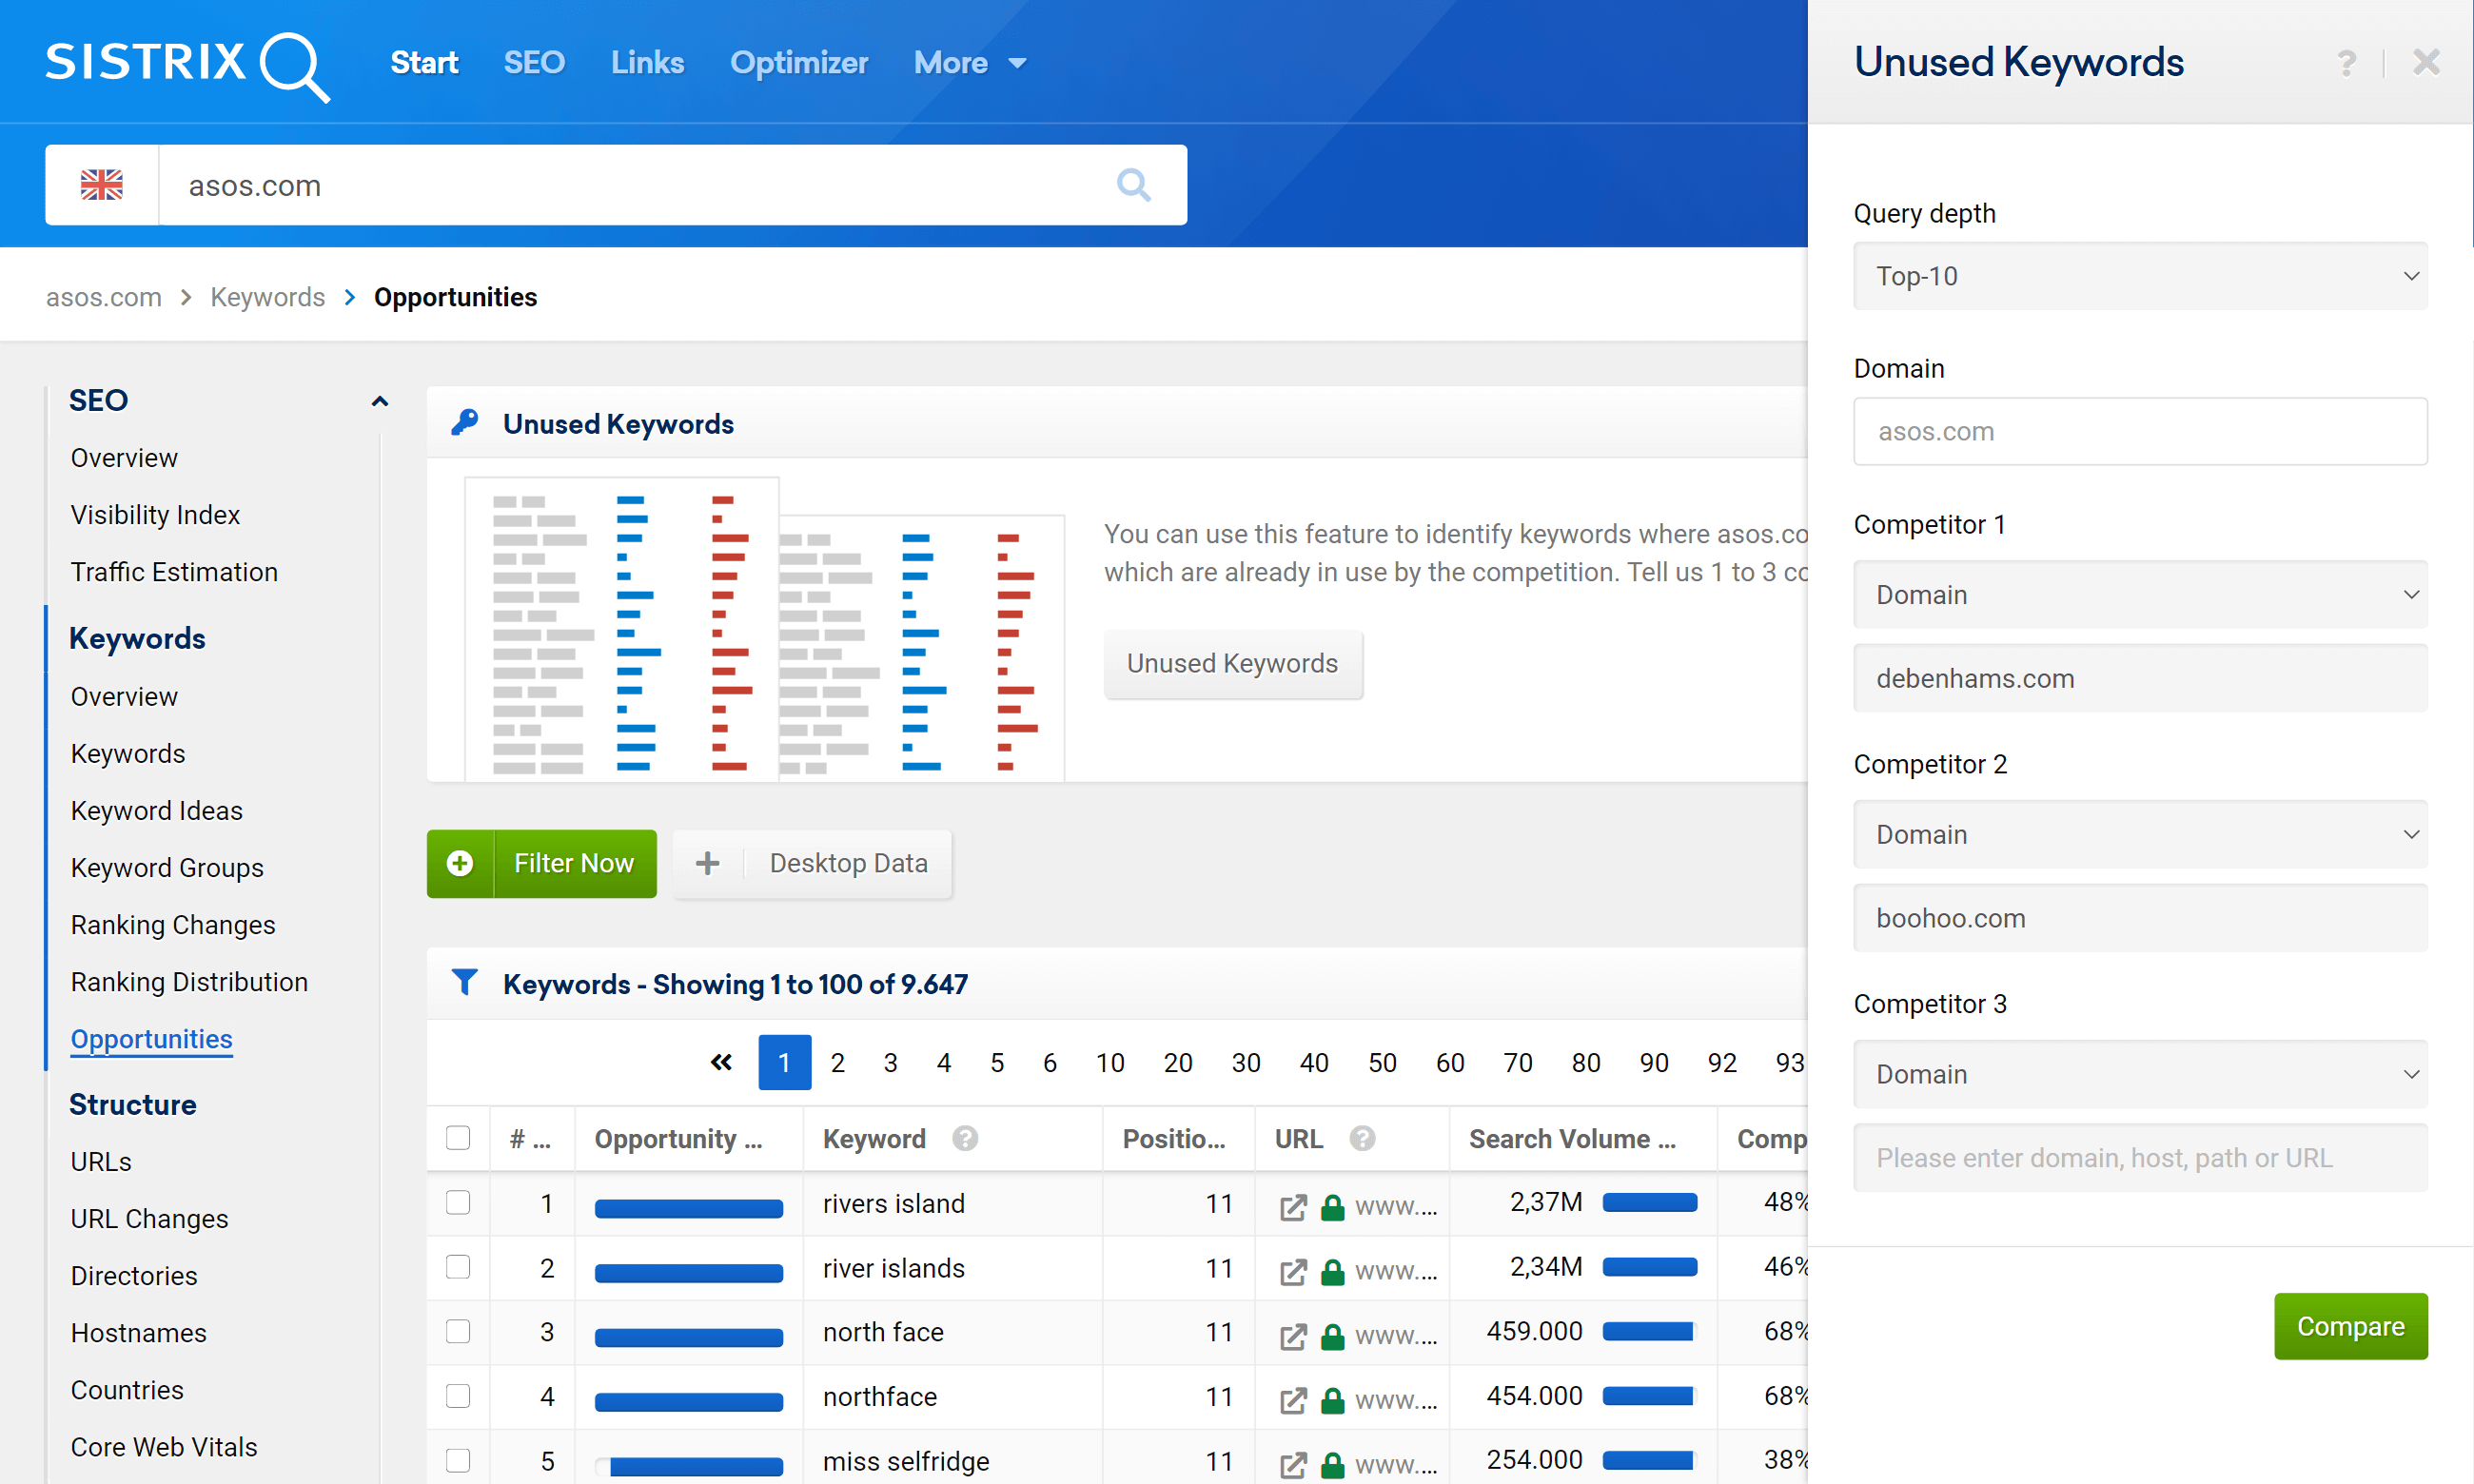 Add competitors to check unused keywords